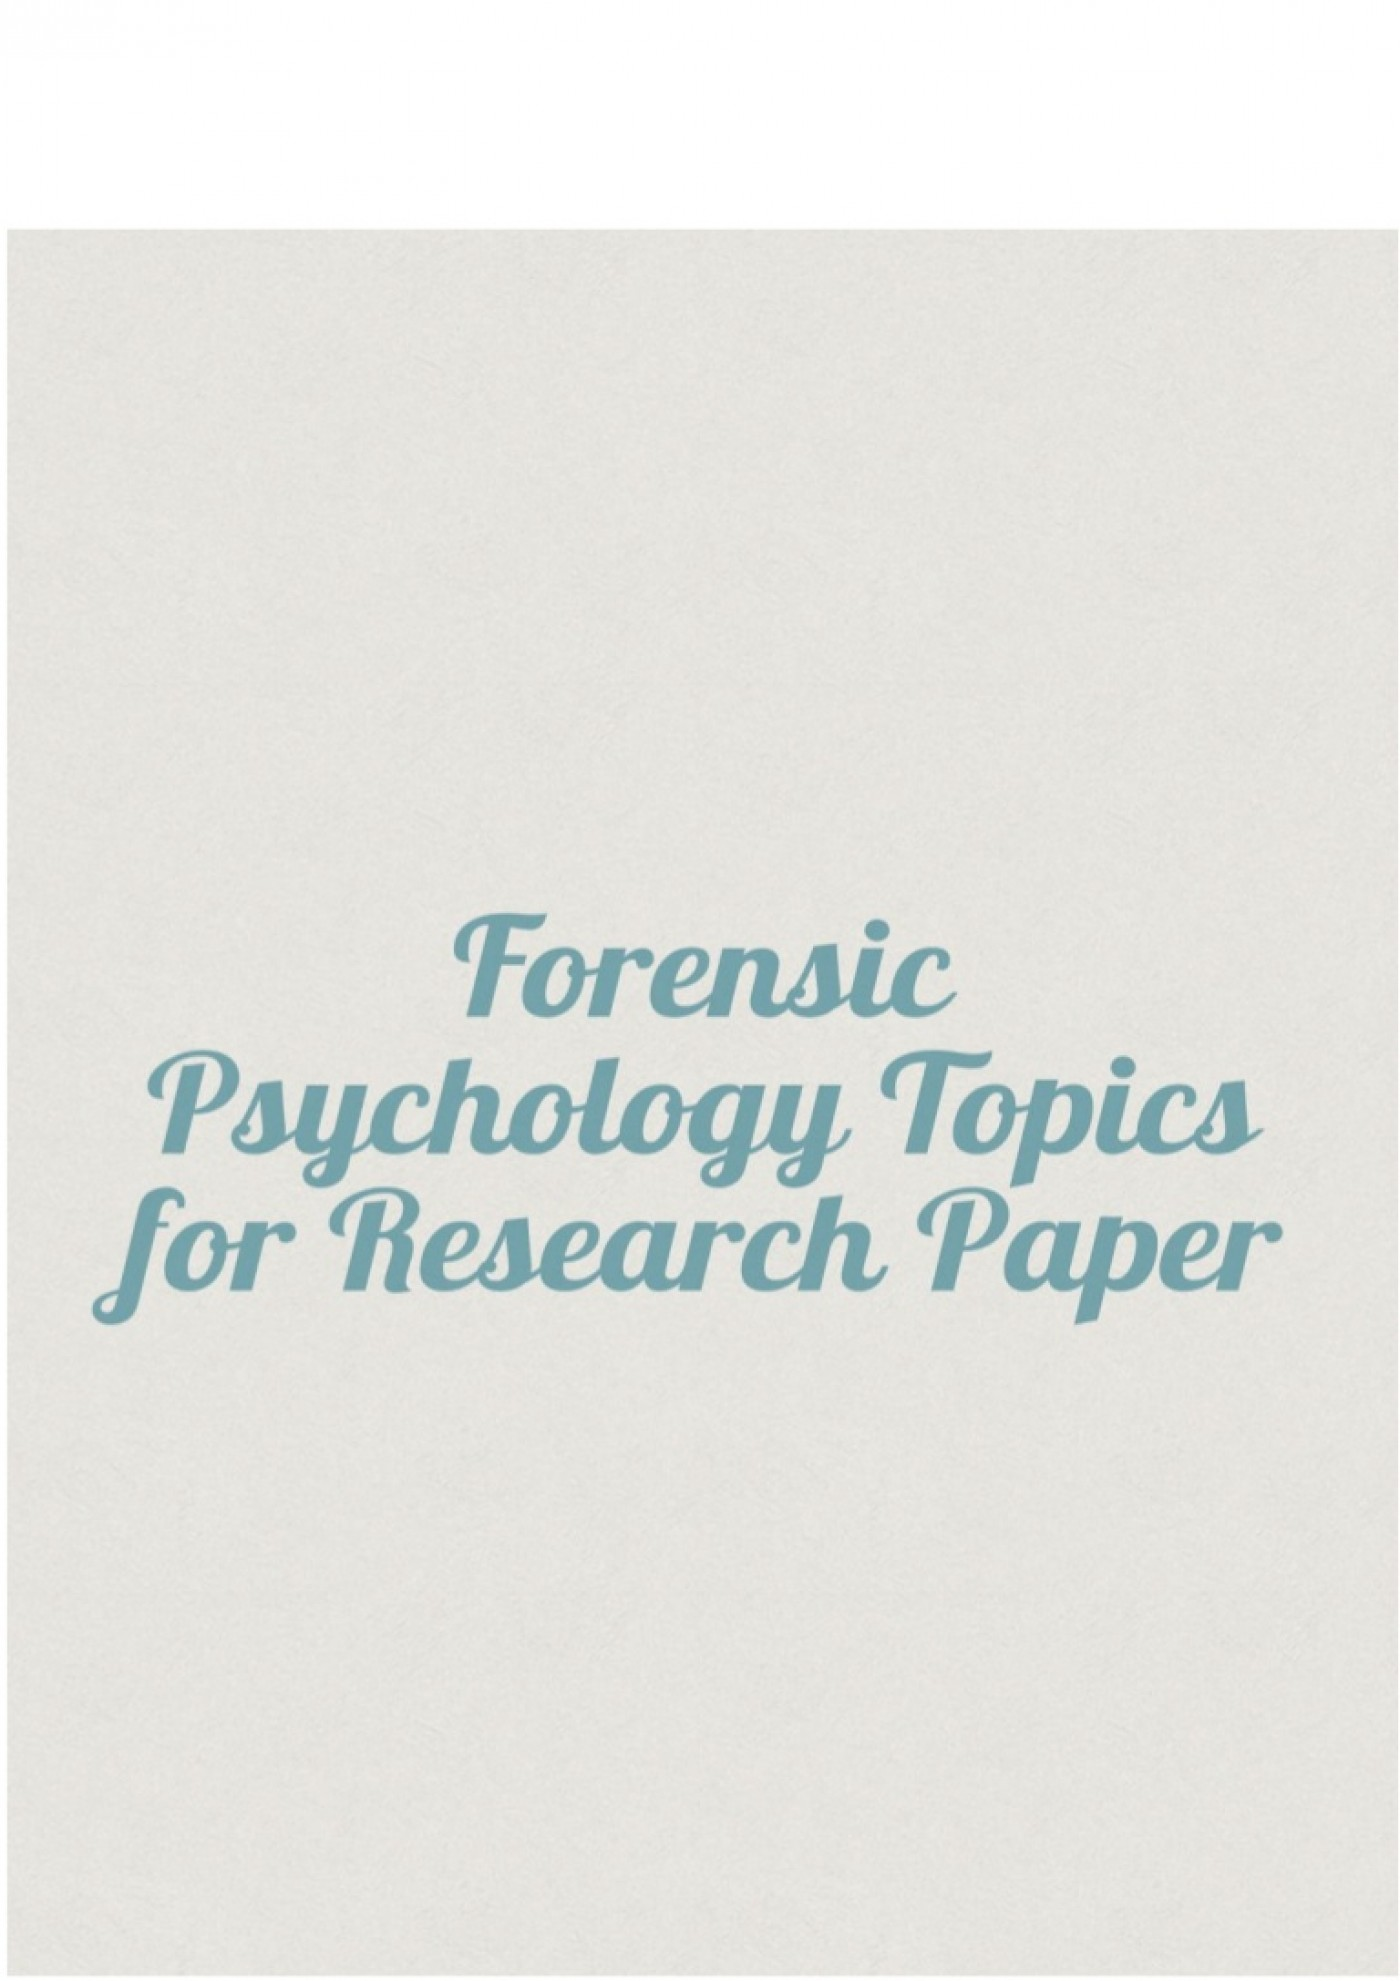 008 Psychology Topics For Research Paper Forensicpsychologytopicsforresearchpaper Thumbnail Wondrous Forensic Cultural 1400